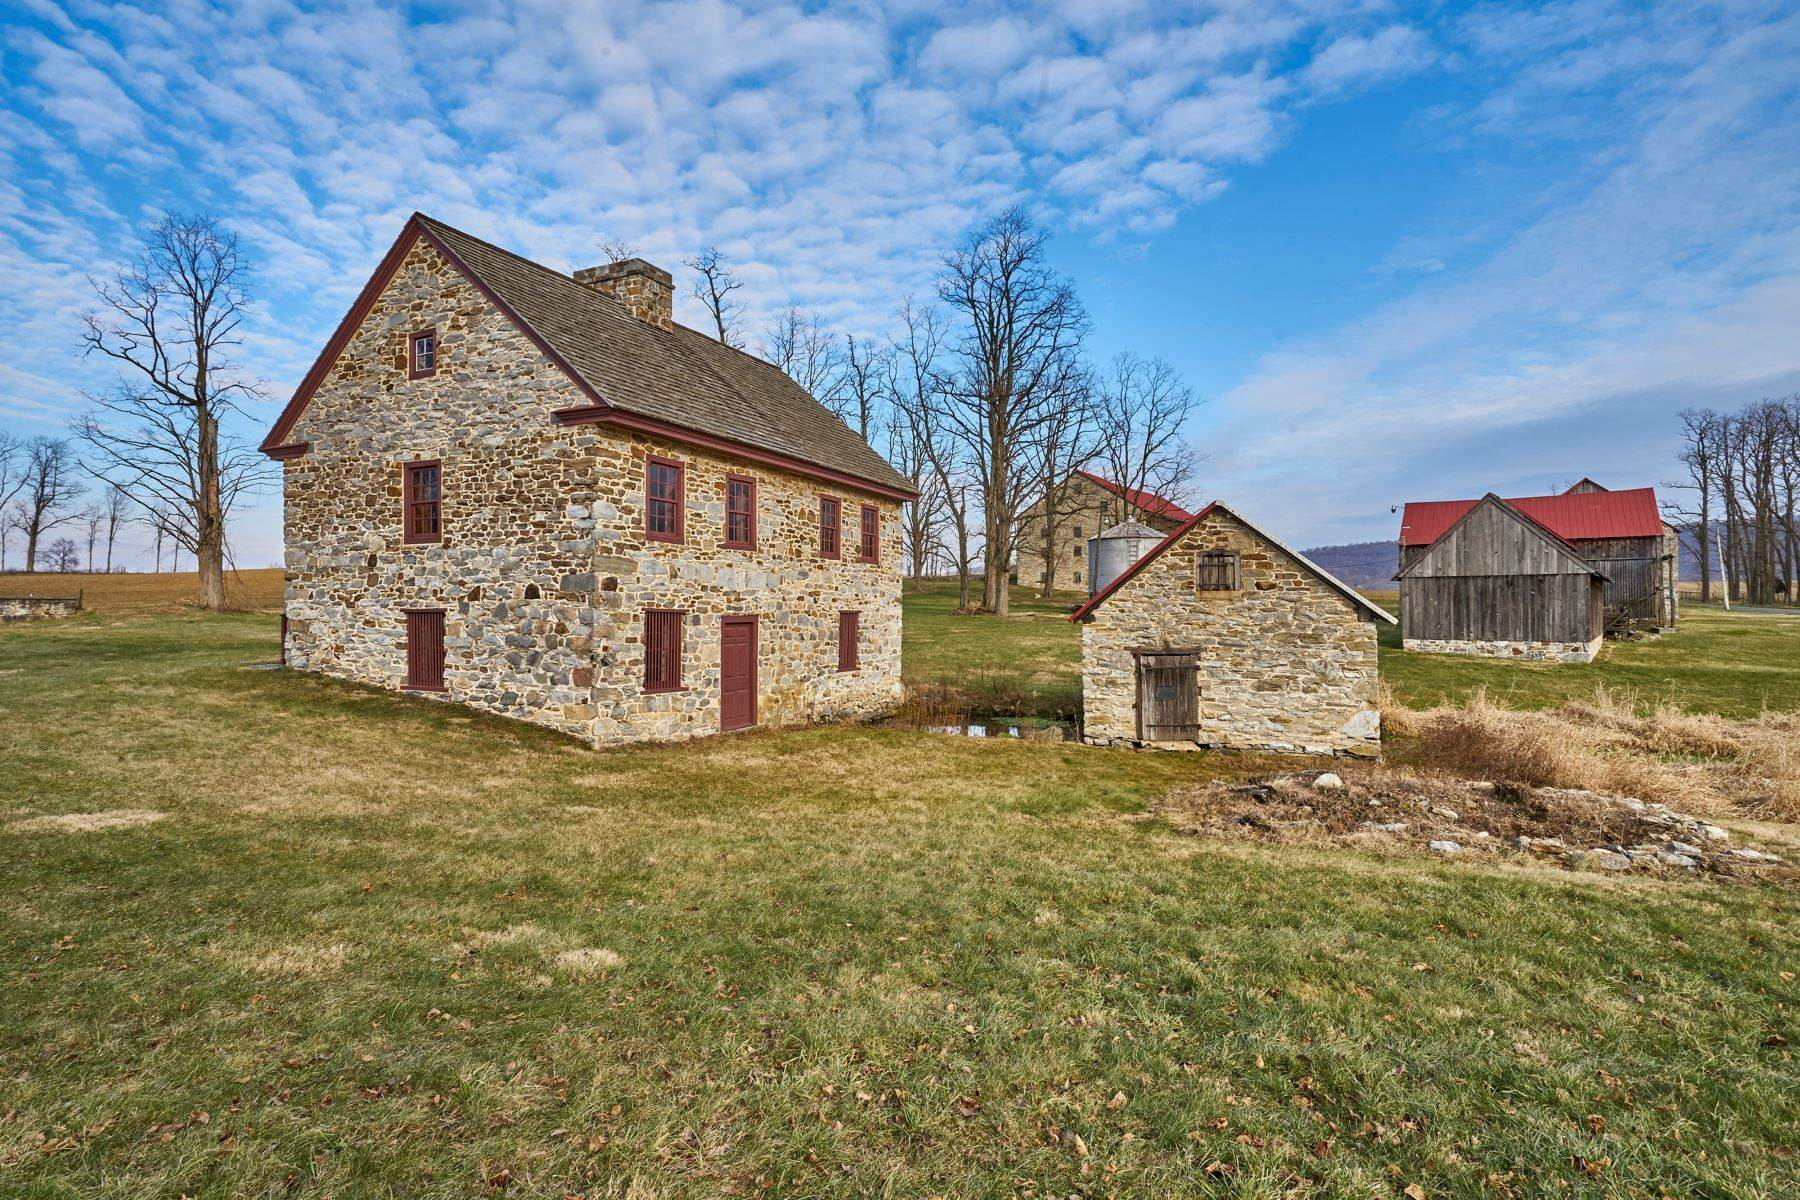 Farm and Ranch Properties for Sale at The Kauffman Farm 293 KAUFFMAN RD Oley, Pennsylvania 19547 United States